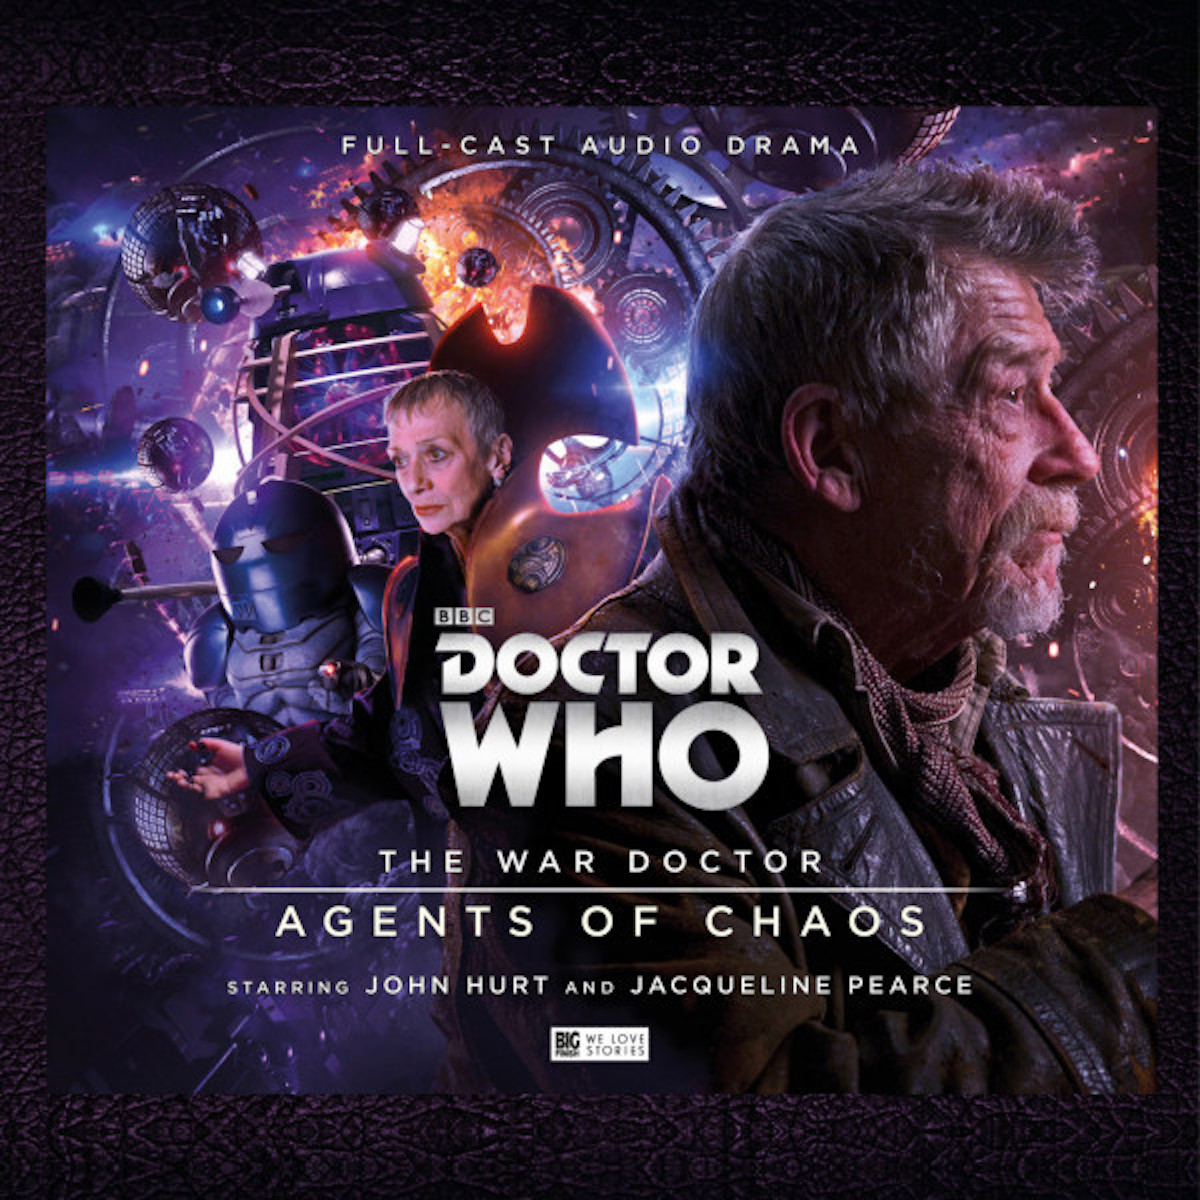 The War Doctor Agents OF Chaos